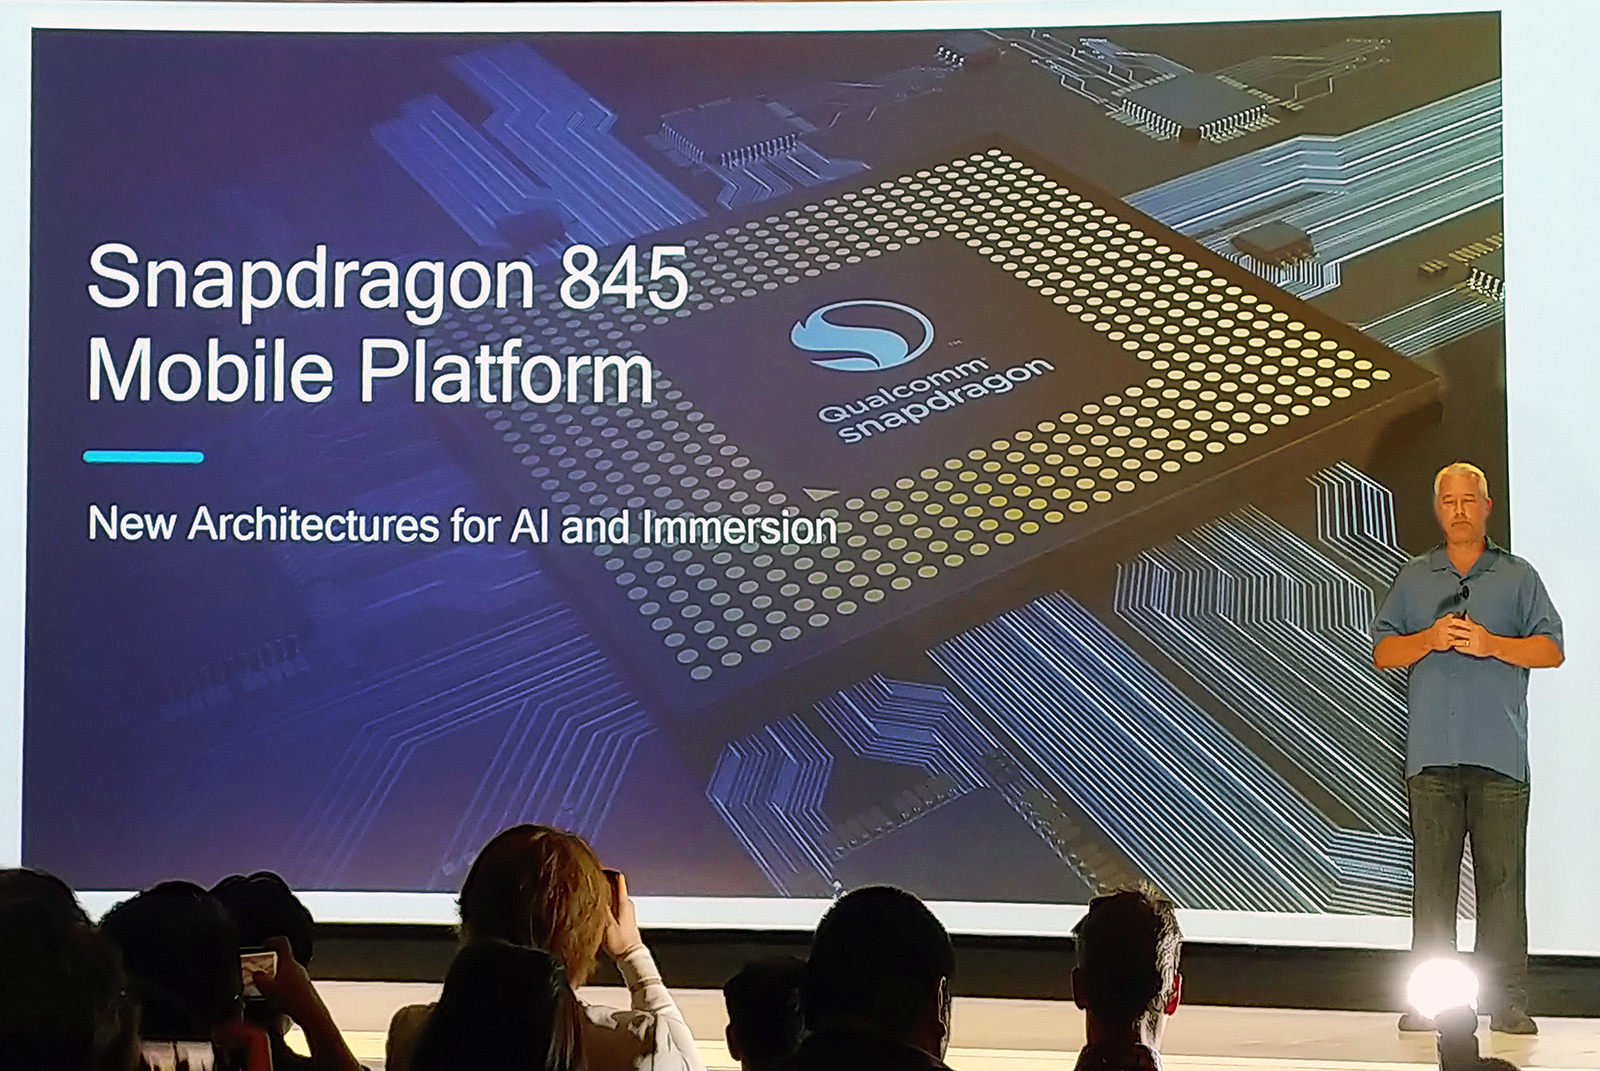 Qualcomm Snapdragon 845 Boosts CPU And GPU Performance, Delivers 4K HDR Capture, 3X Faster AI Processing